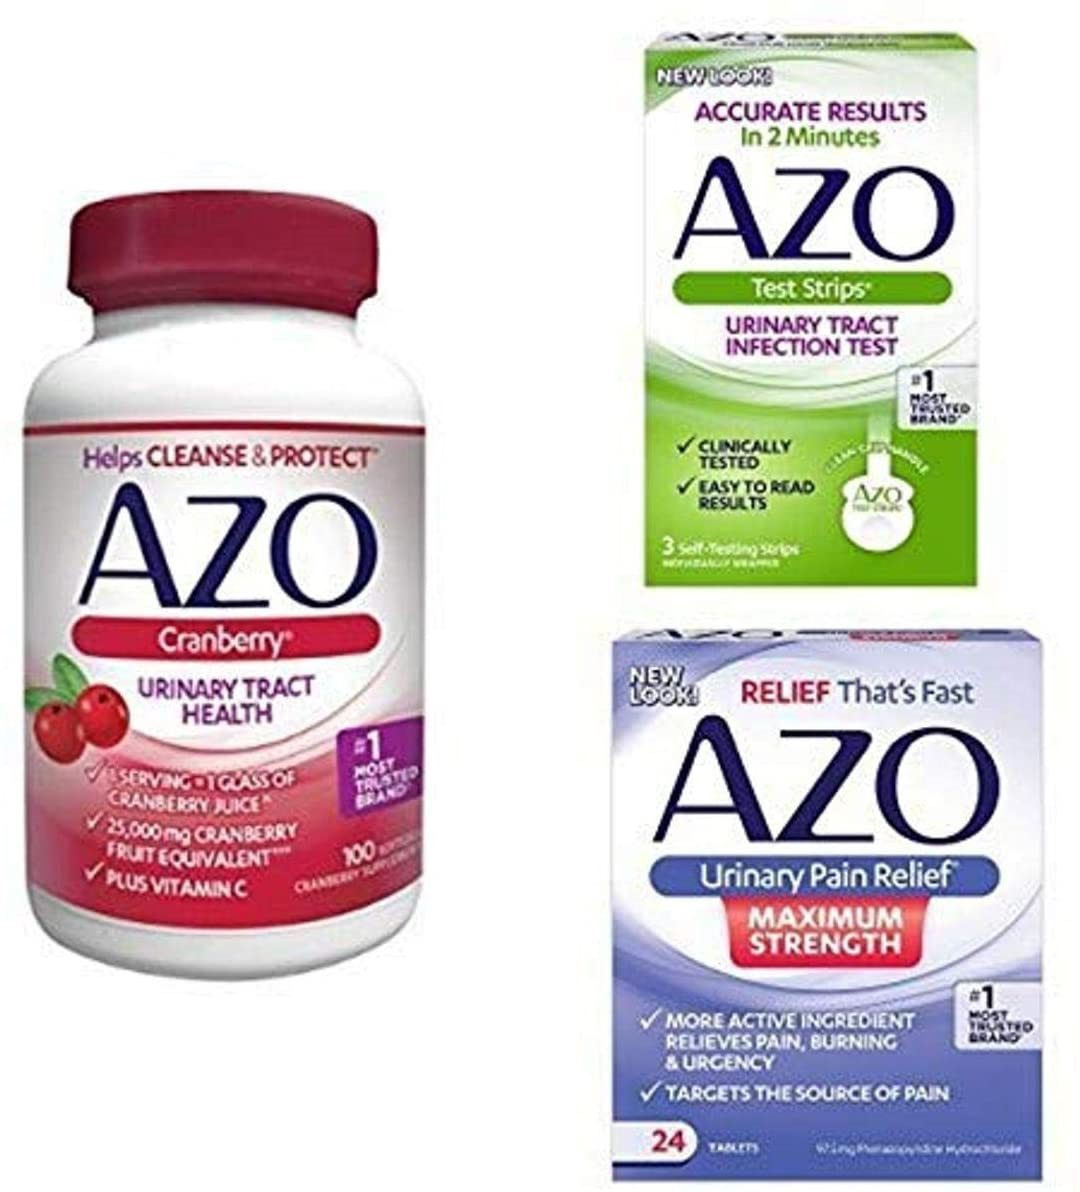 AZO UTI Pain Relief Bundle - 3 Products to Test, Relieve Pain, Protect